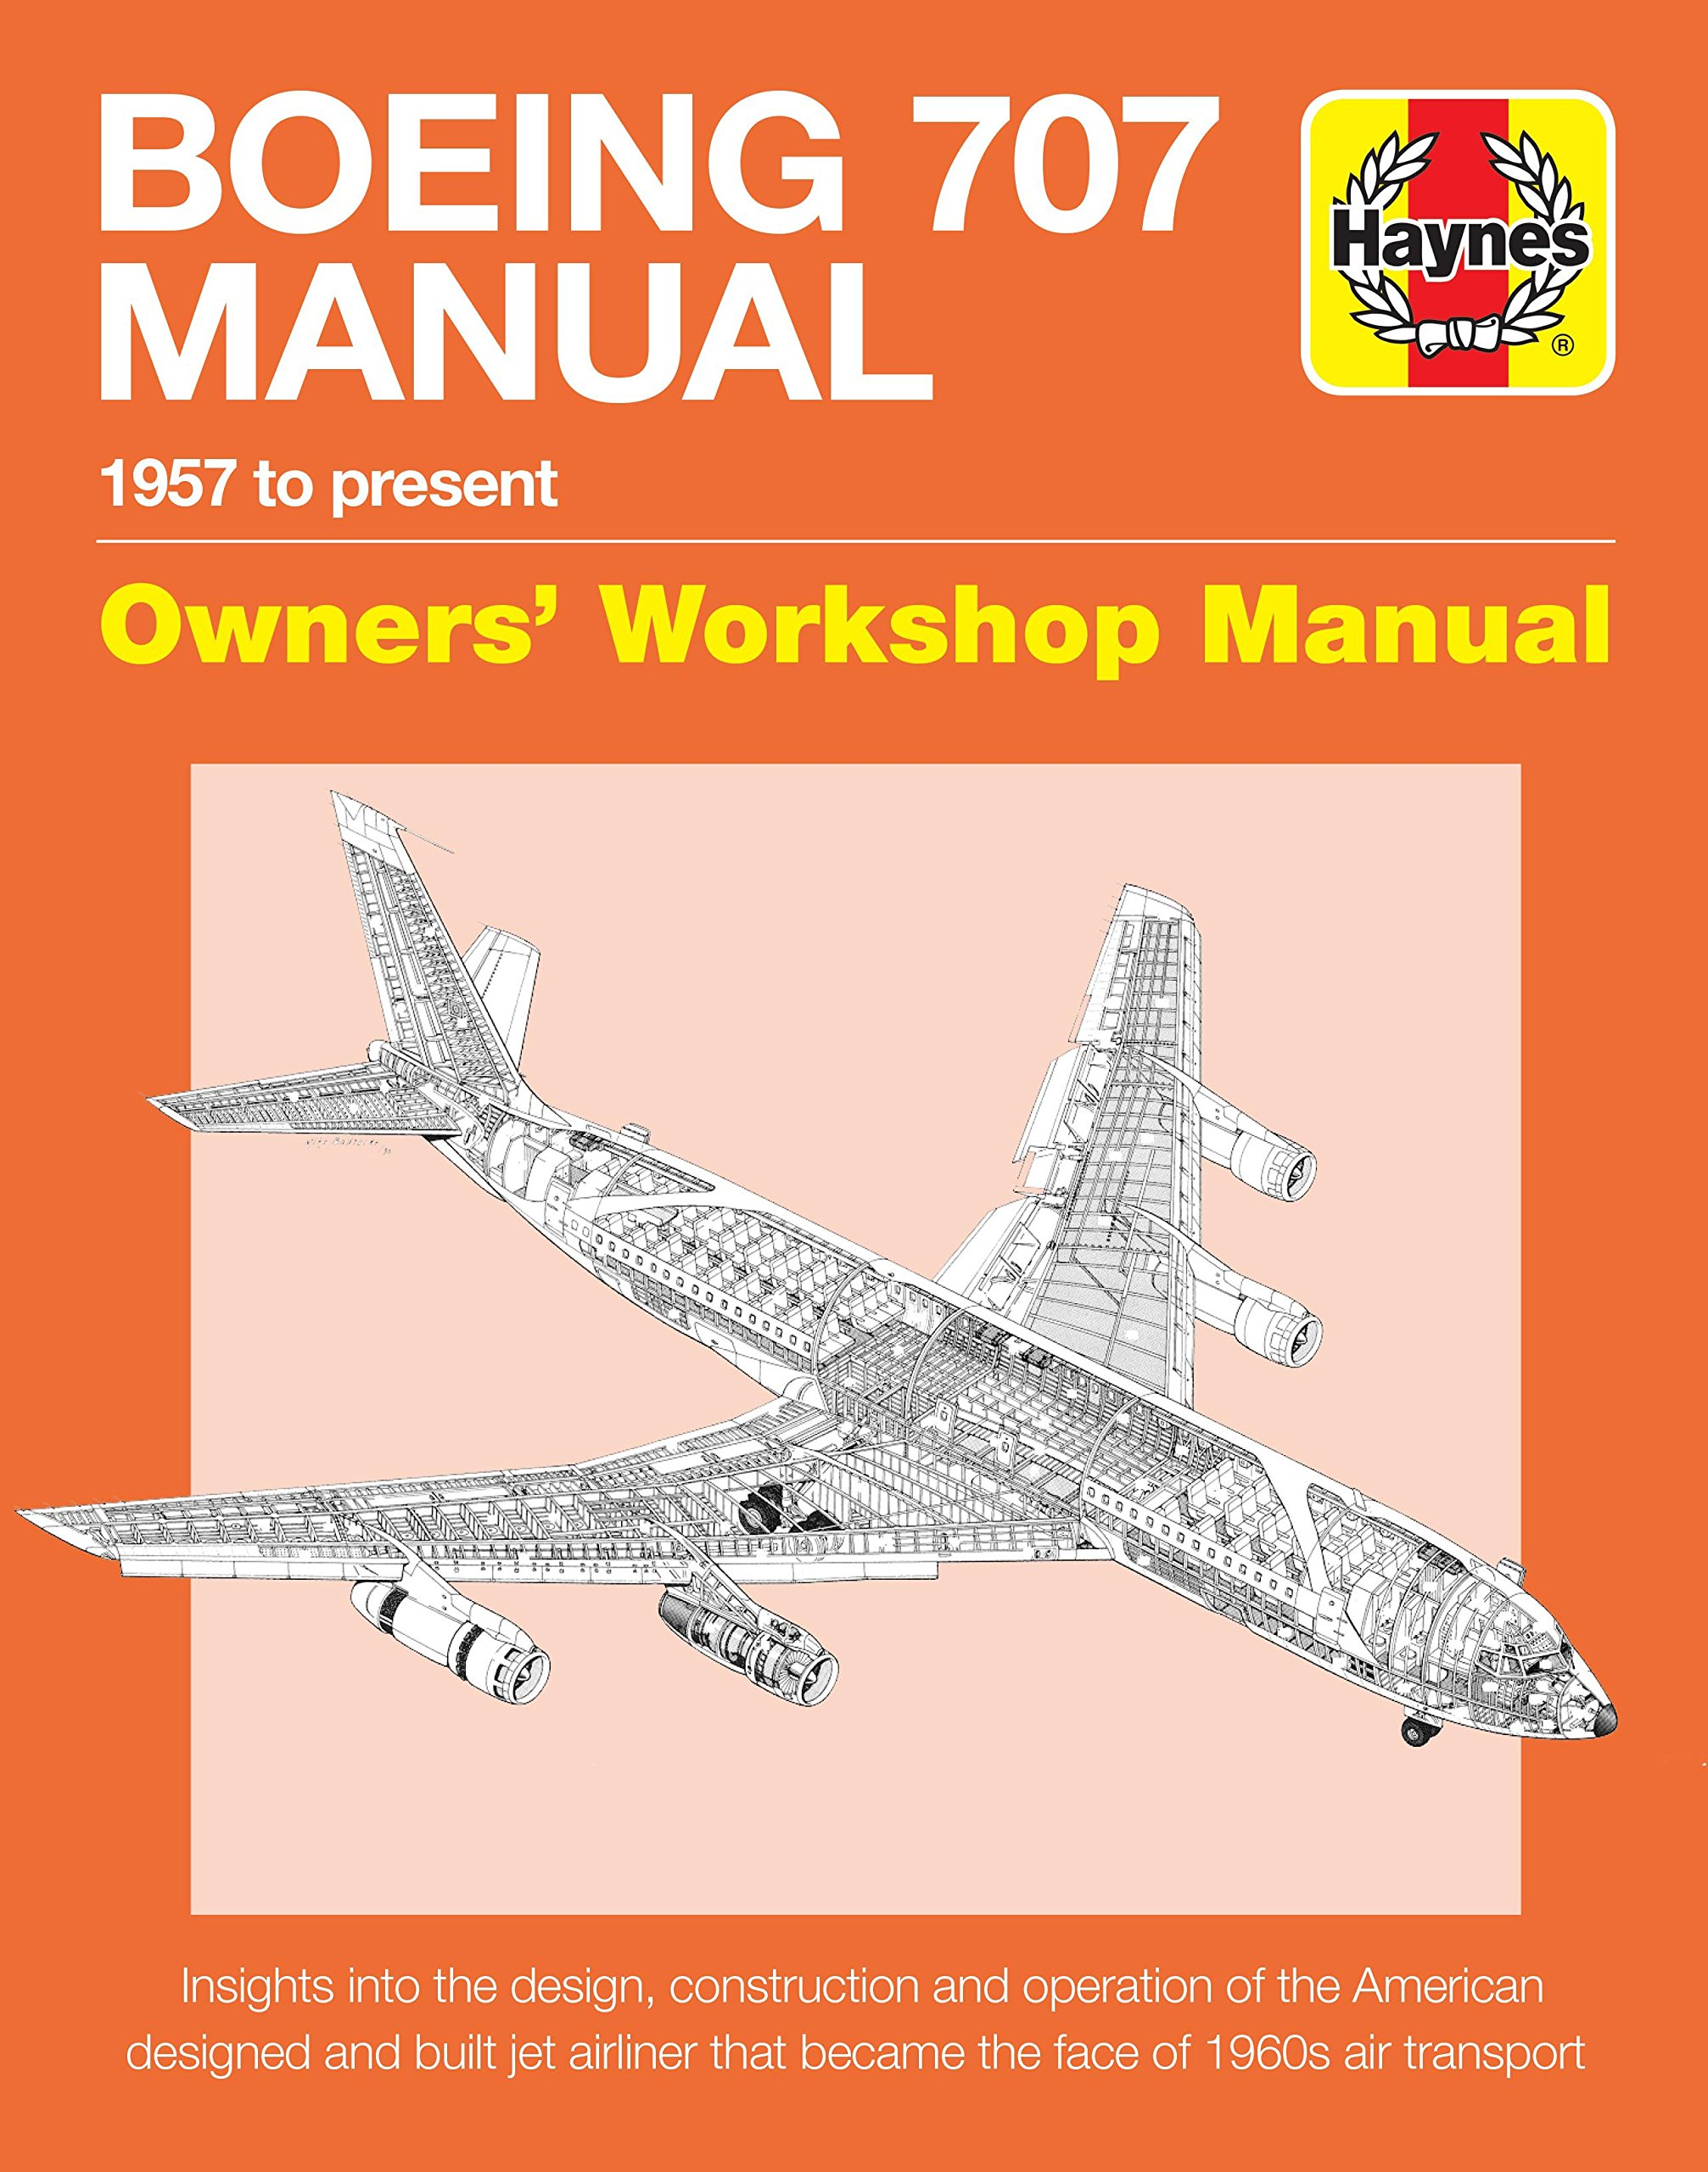 boeing 707 manual haynes manuals charles kennedy 9781785211362 rh amazon com Boeing 797 Boeing 777